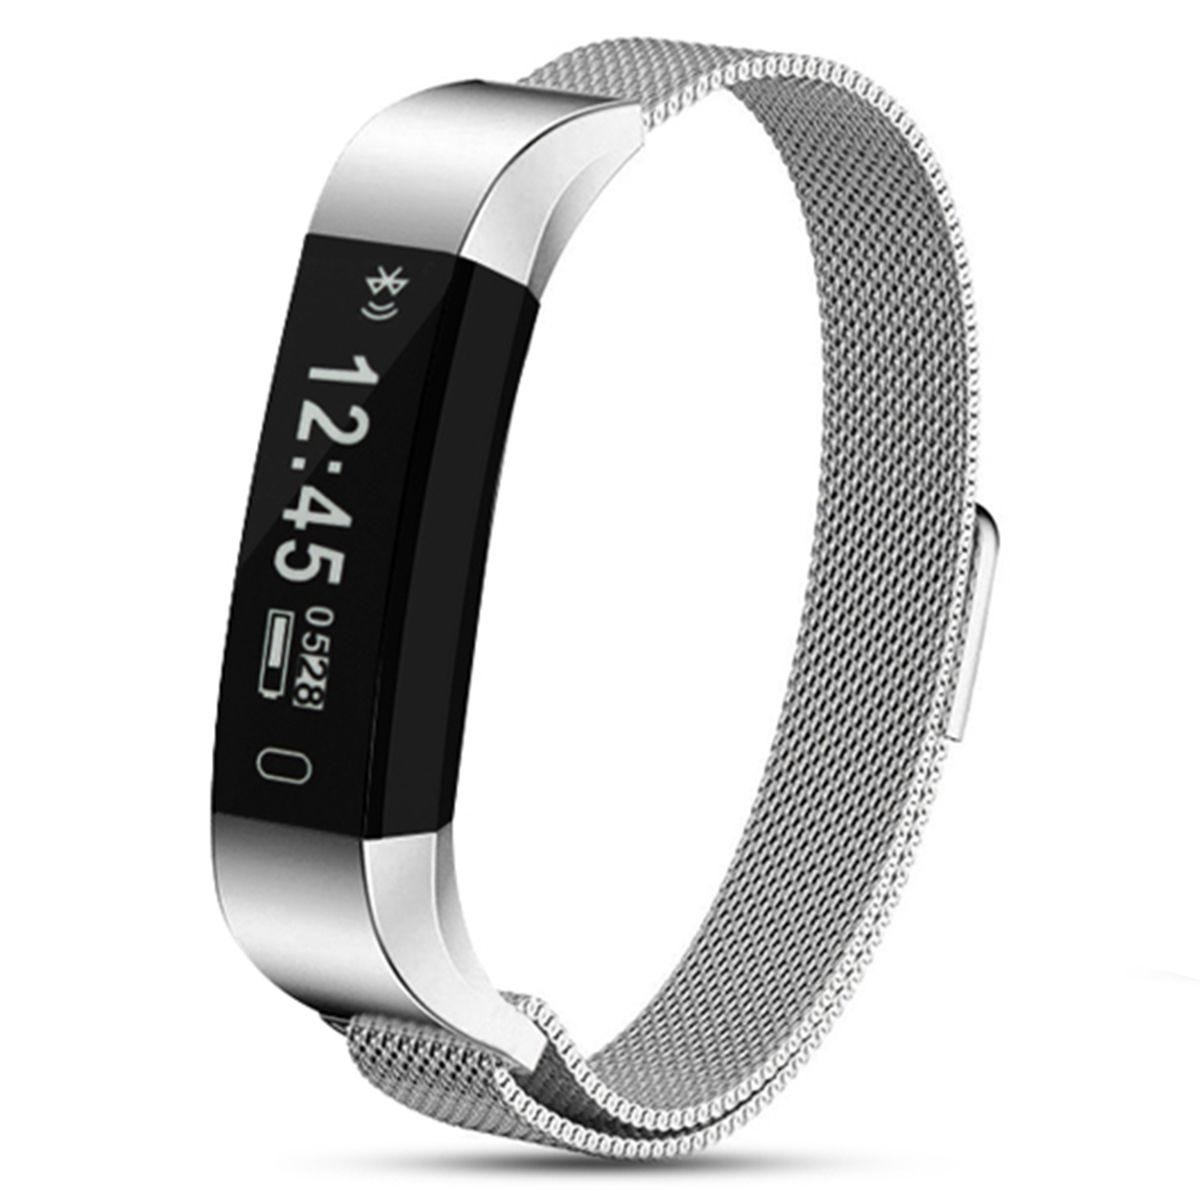 Aquarius AQ115HR Signature Edition Fitness Tracker With Heart Rate Monitor - Metal Strap Silver